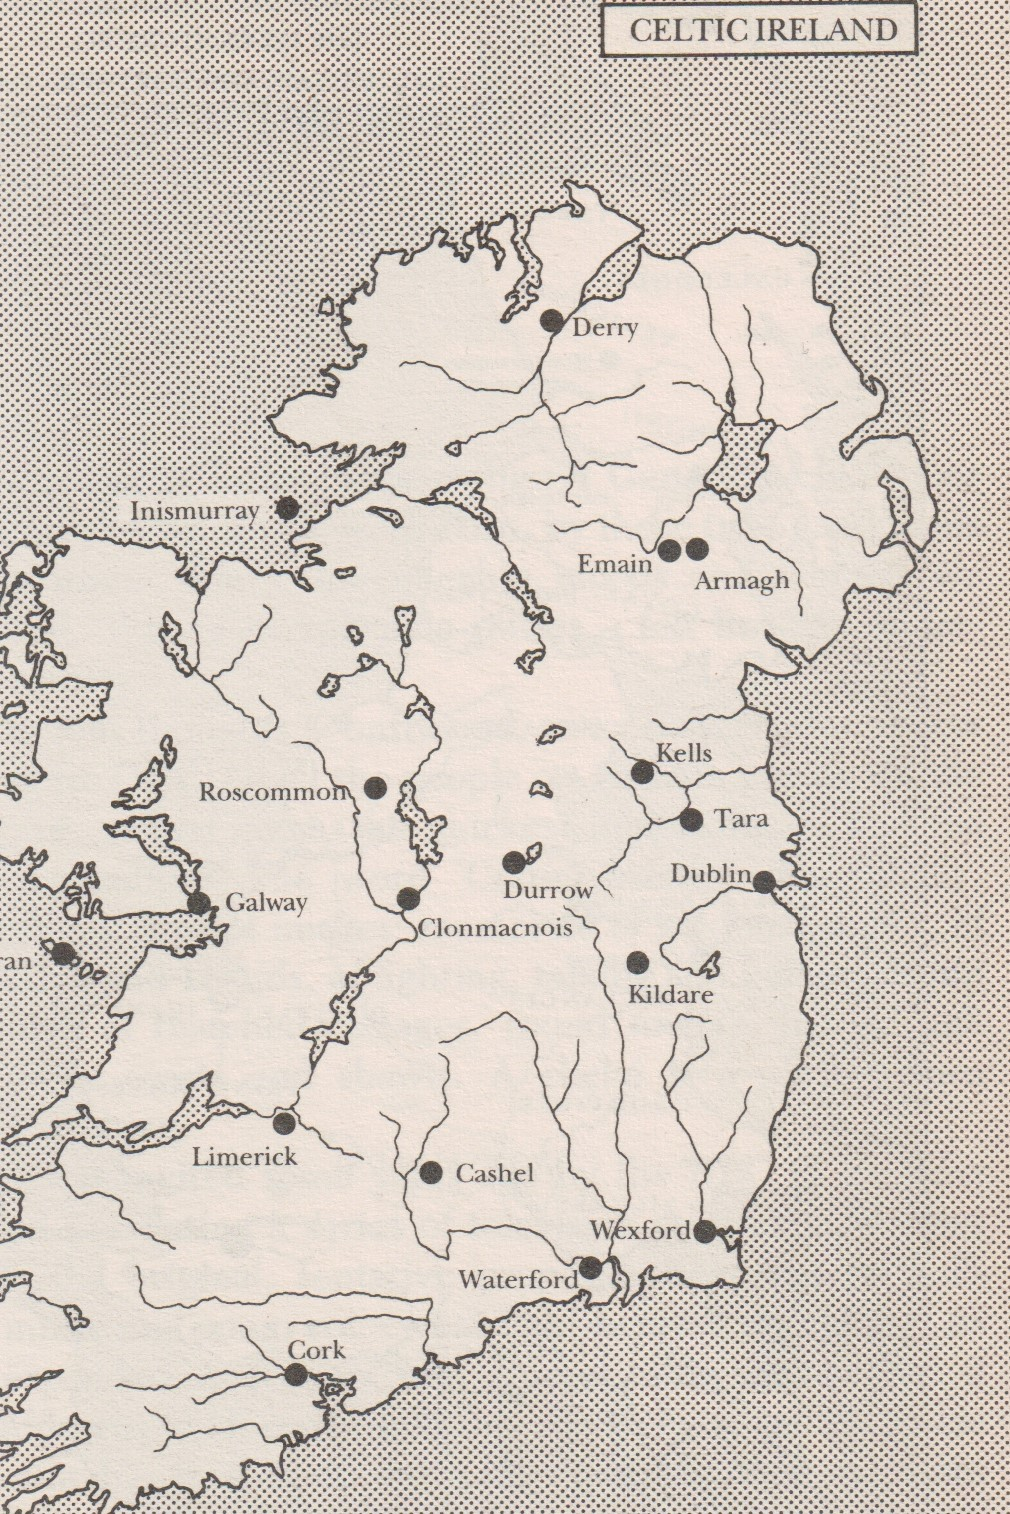 Map of Celtic Ireland